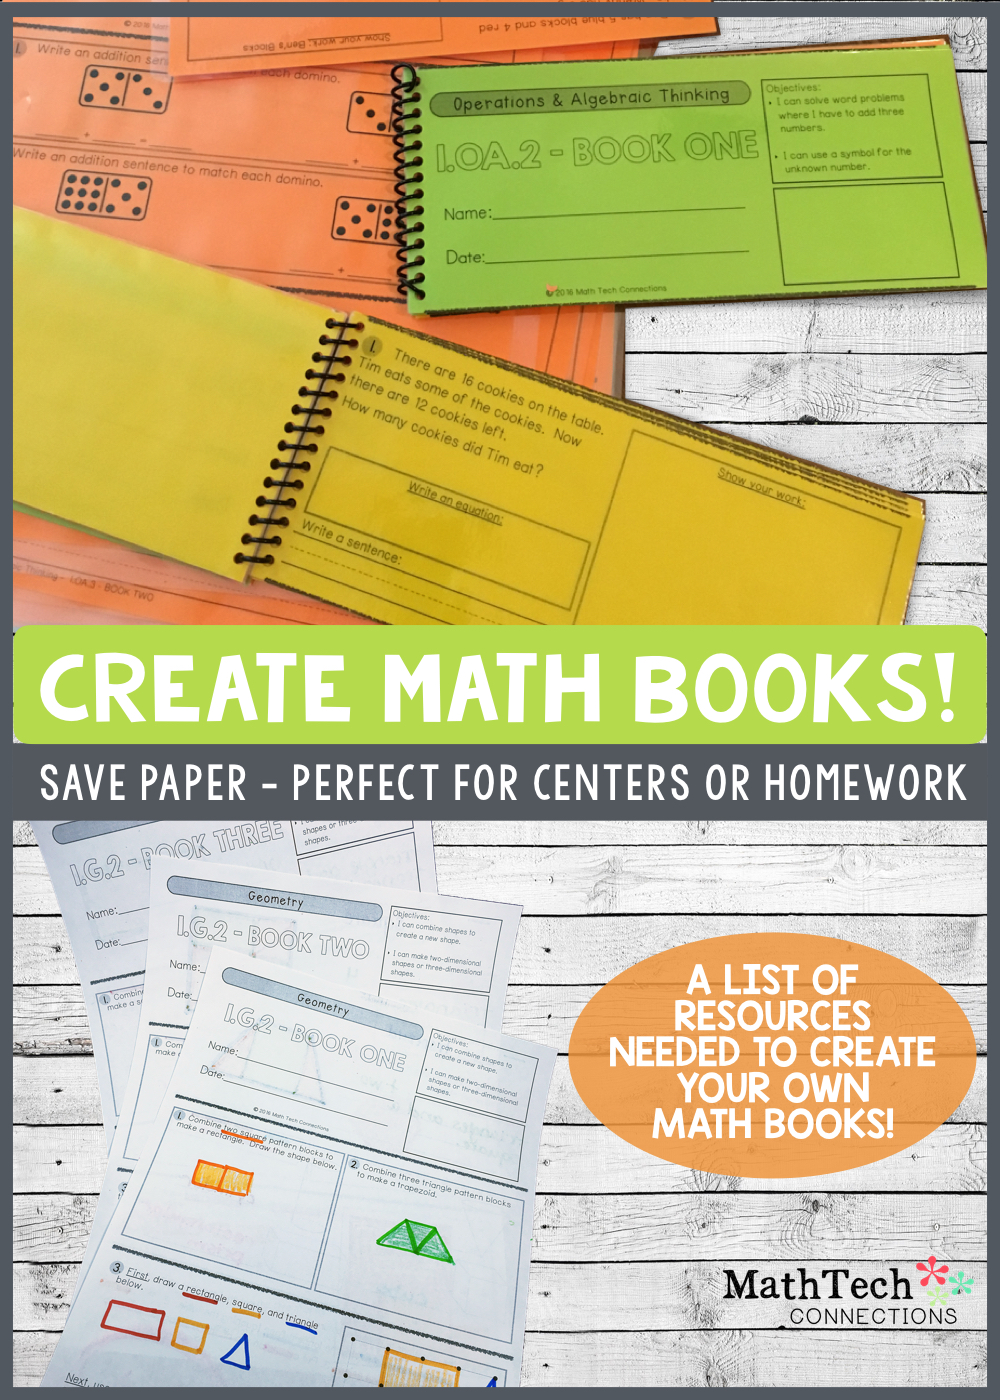 Create math book for use during one on one math conferences, math centers, or homework